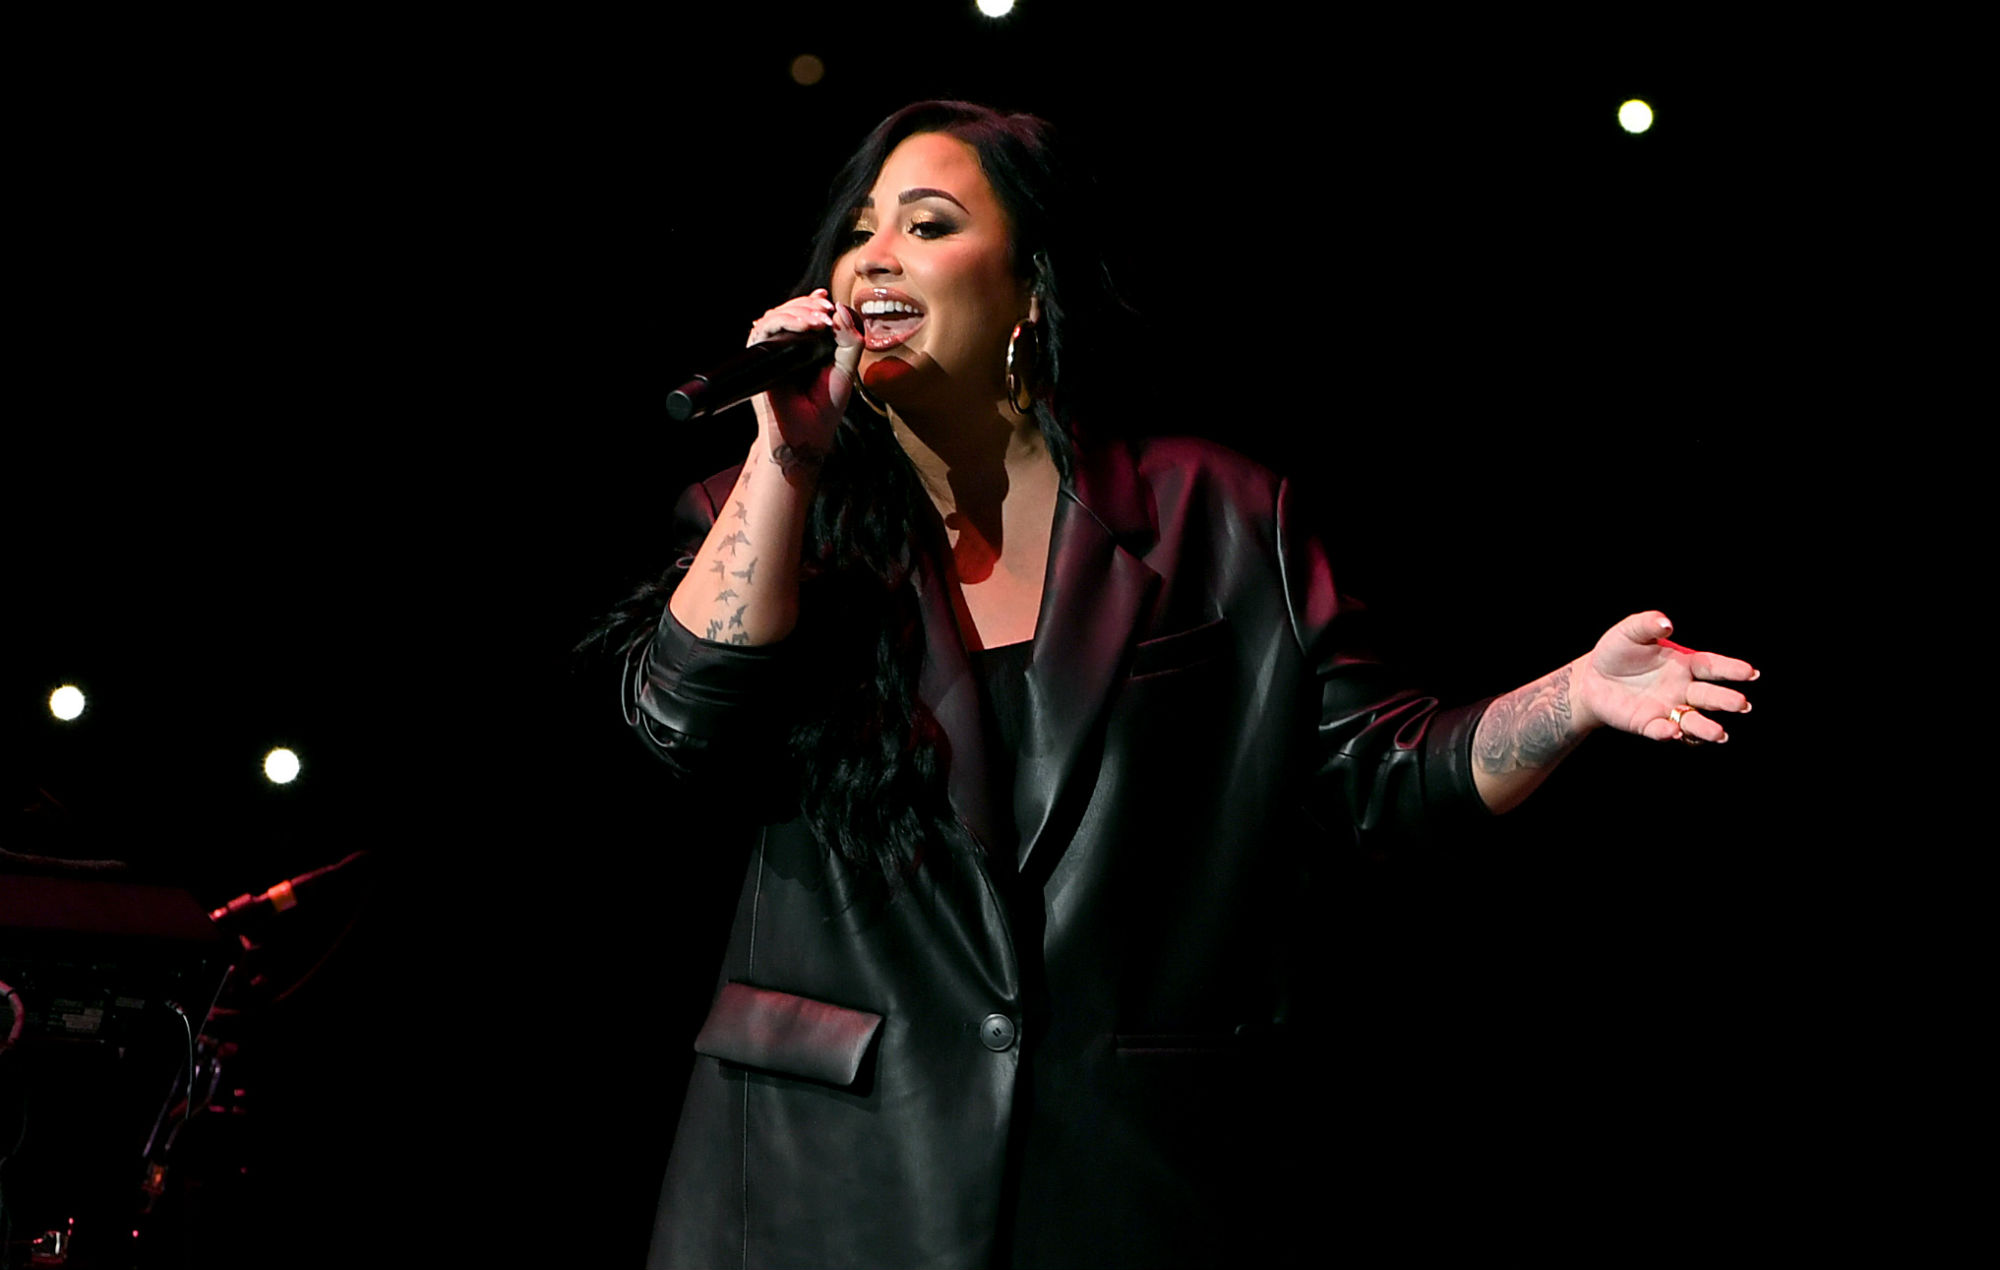 Demi Lovato's life was saved by Narcan